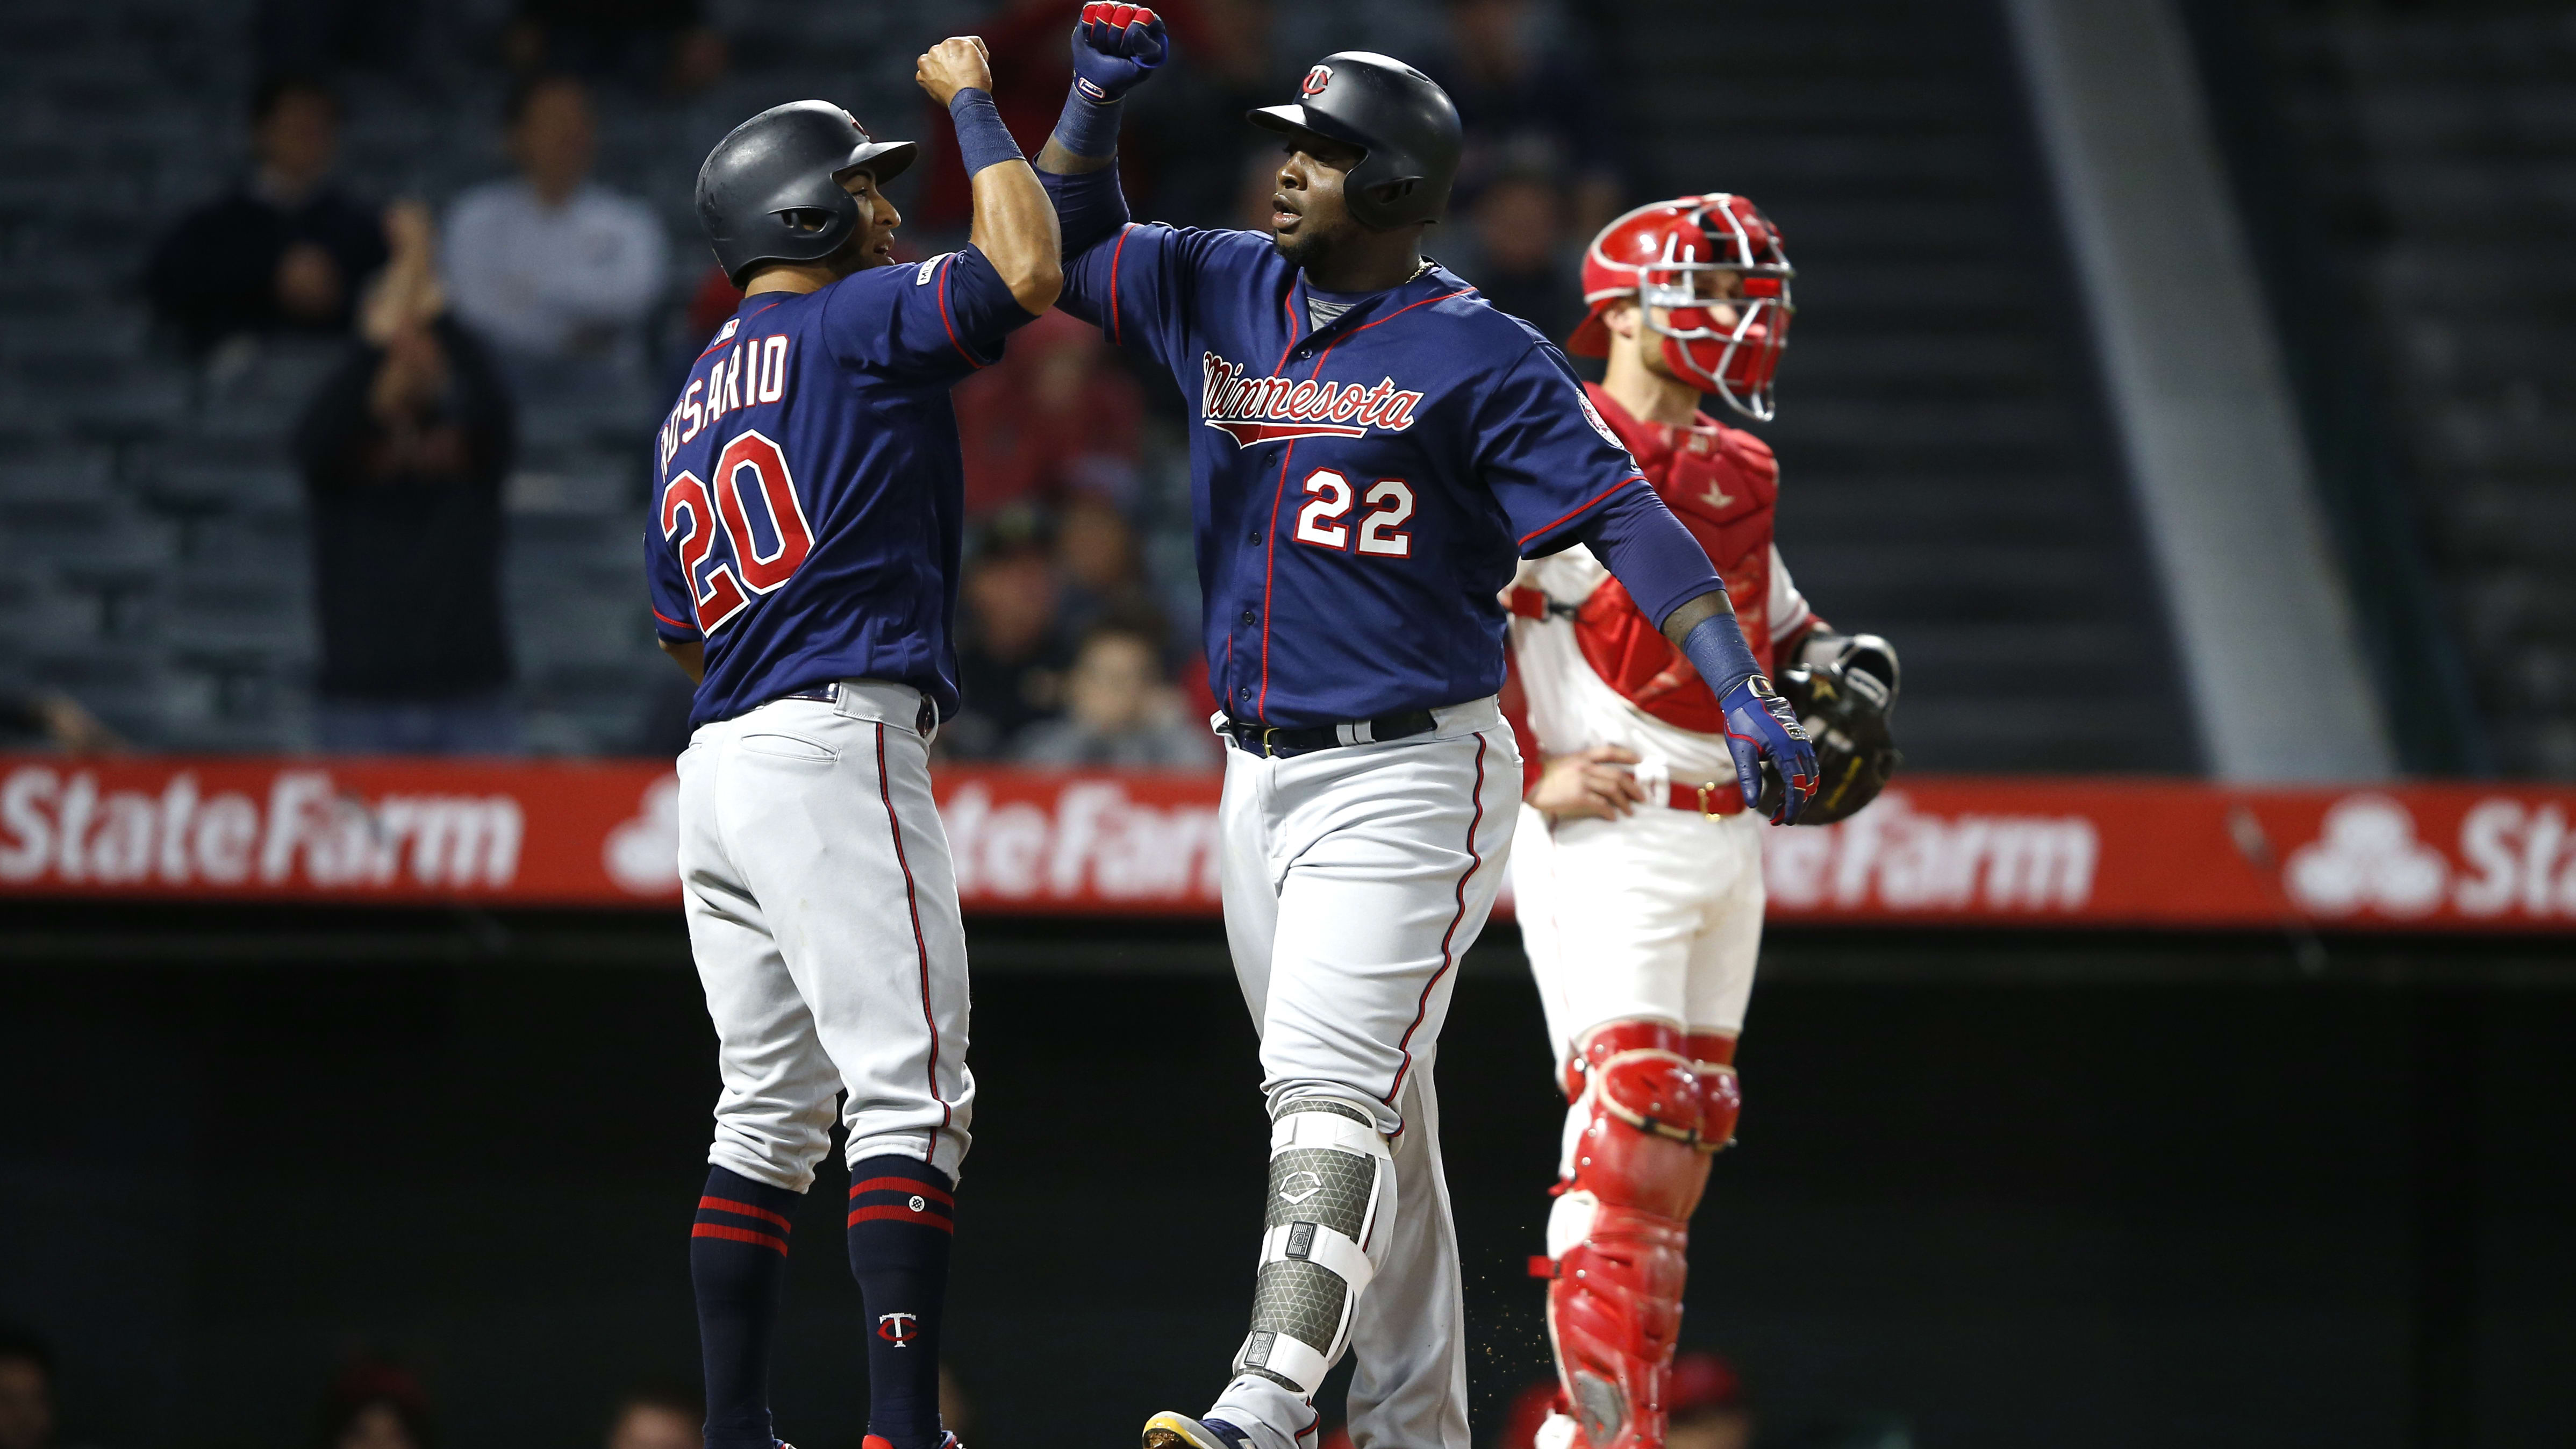 ANAHEIM, CALIFORNIA - MAY 20:  Eddie Rosario #20 of the Minnesota Twins congratulates Miguel Sano #22 of the Minnesota Twins  after his three-run homerun as Jonathan Lucroy #20 of the Los Angeles Angels of Anaheim looks on during the eighth inning of a game at Angel Stadium of Anaheim on May 20, 2019 in Anaheim, California. (Photo by Sean M. Haffey/Getty Images)